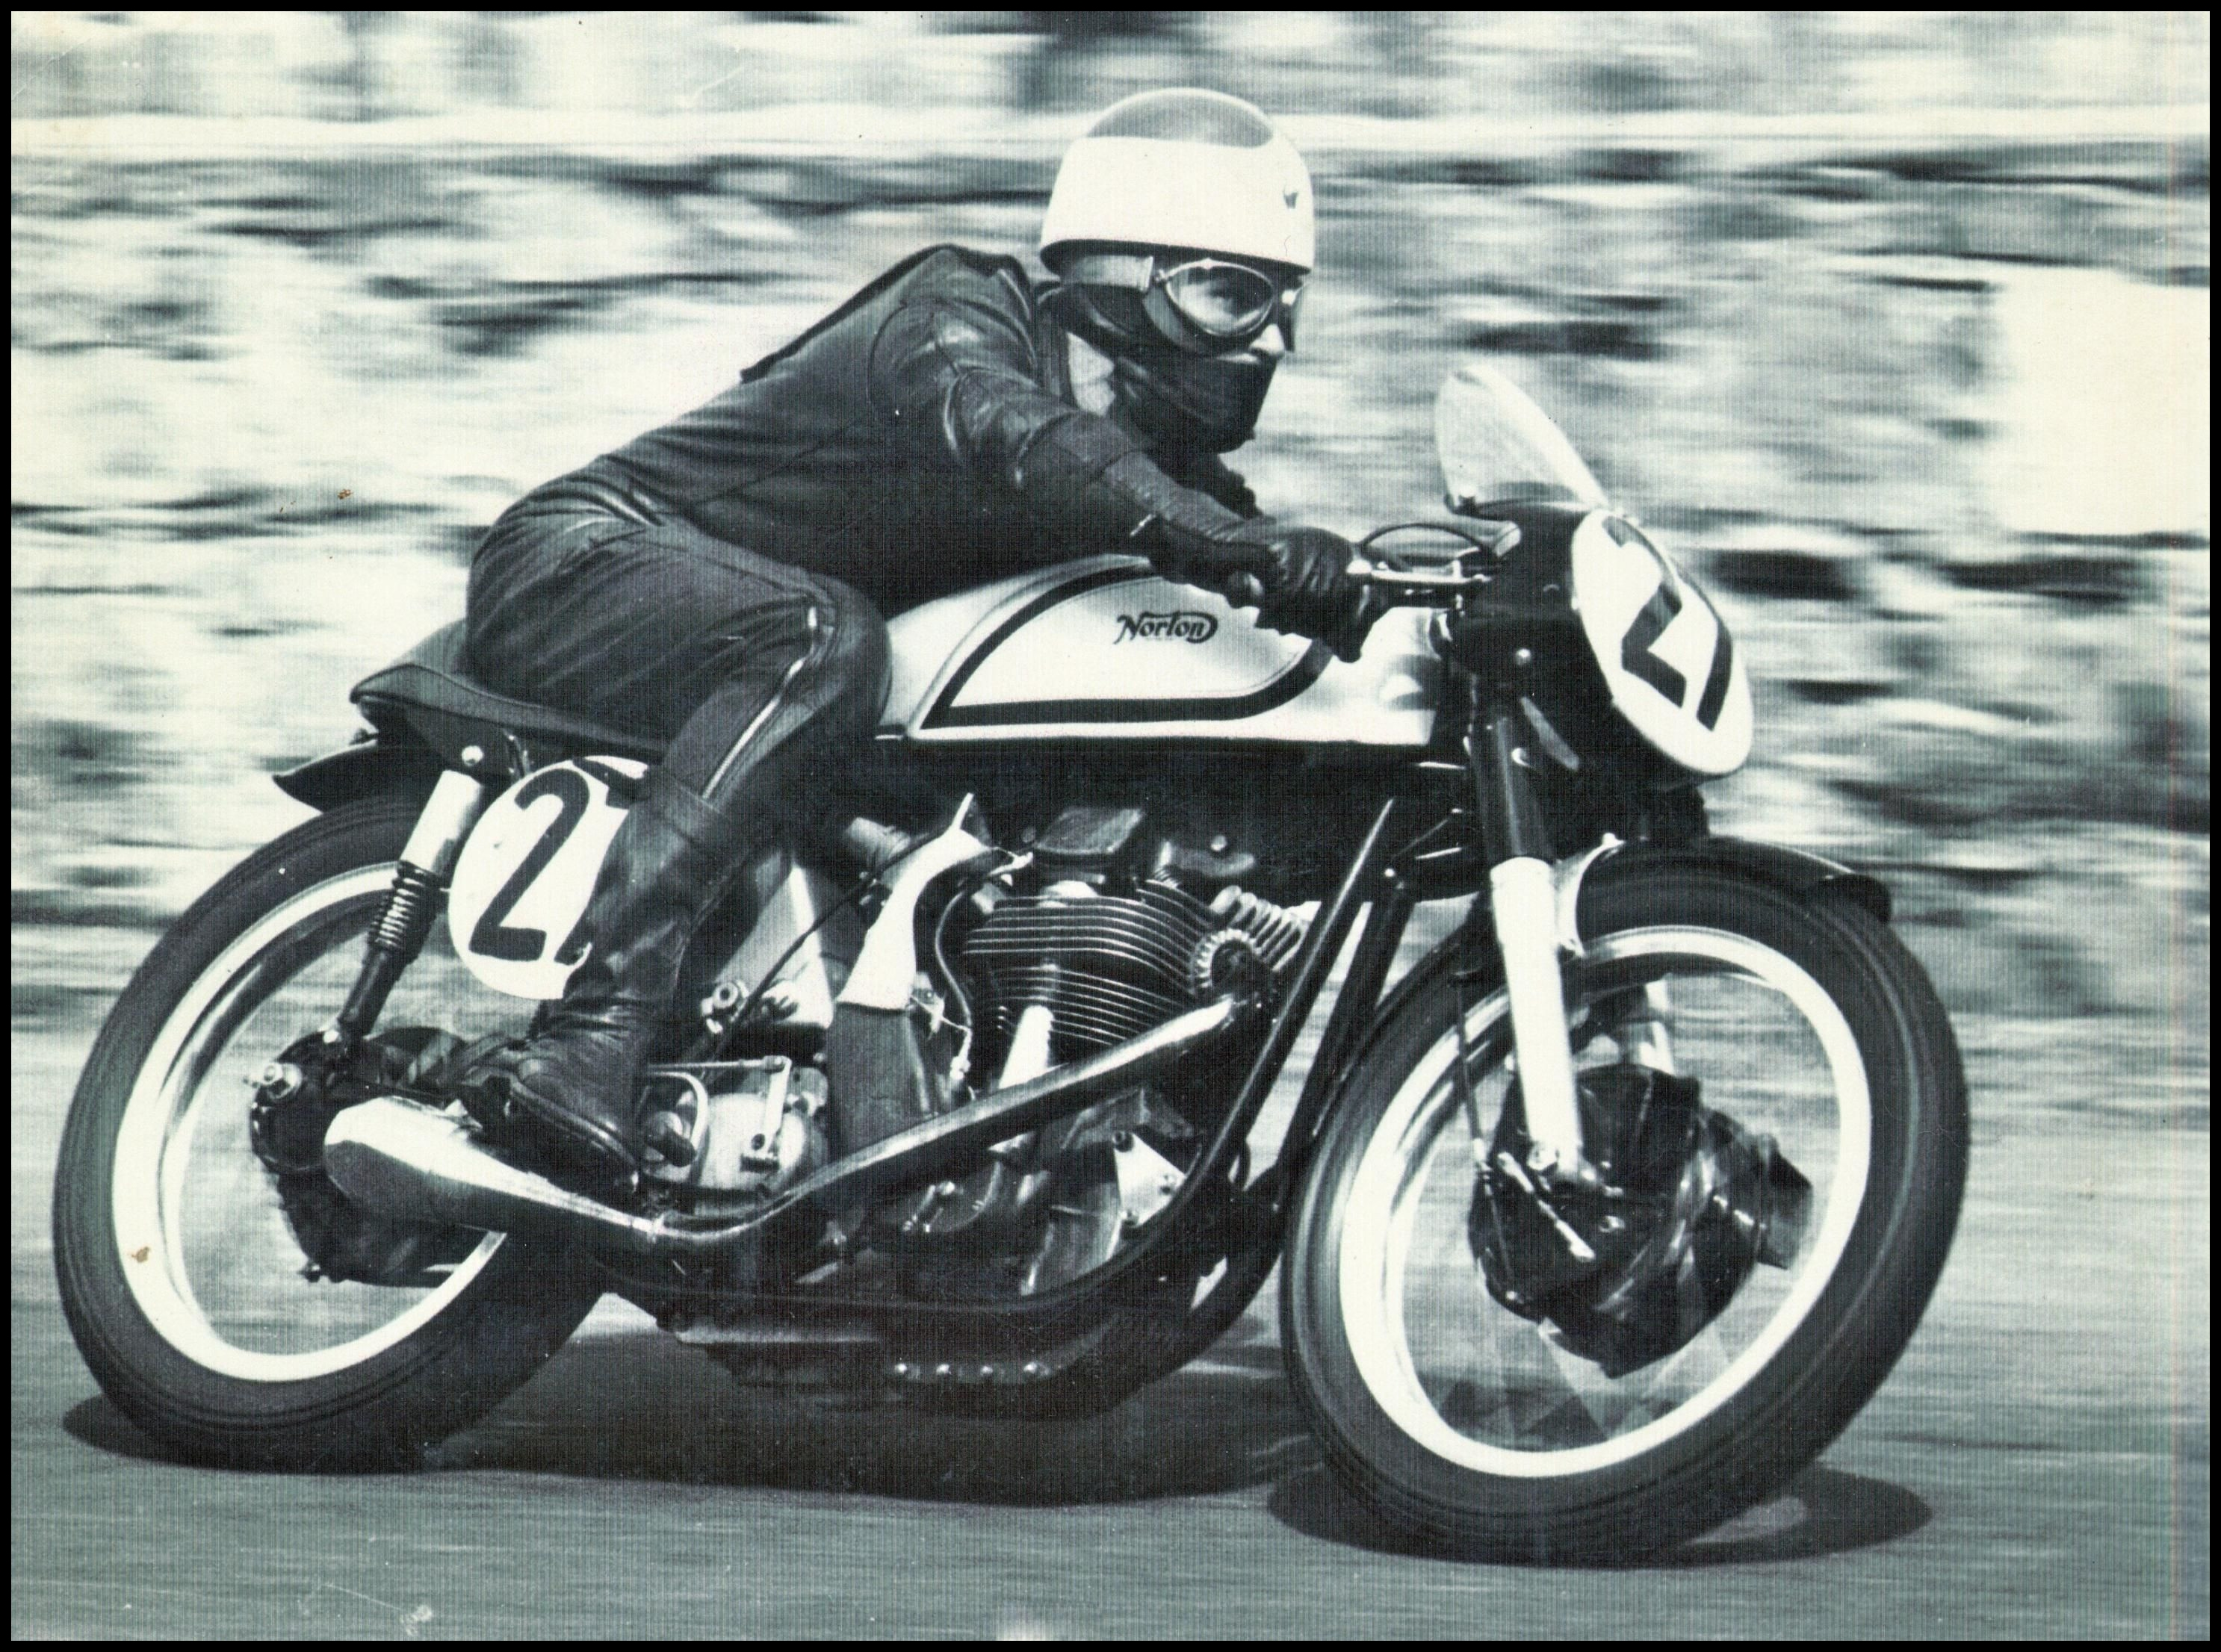 Old Bmw Motorcycle Parts Luxury Image Result for Vintage Bmw Motorcycle Race